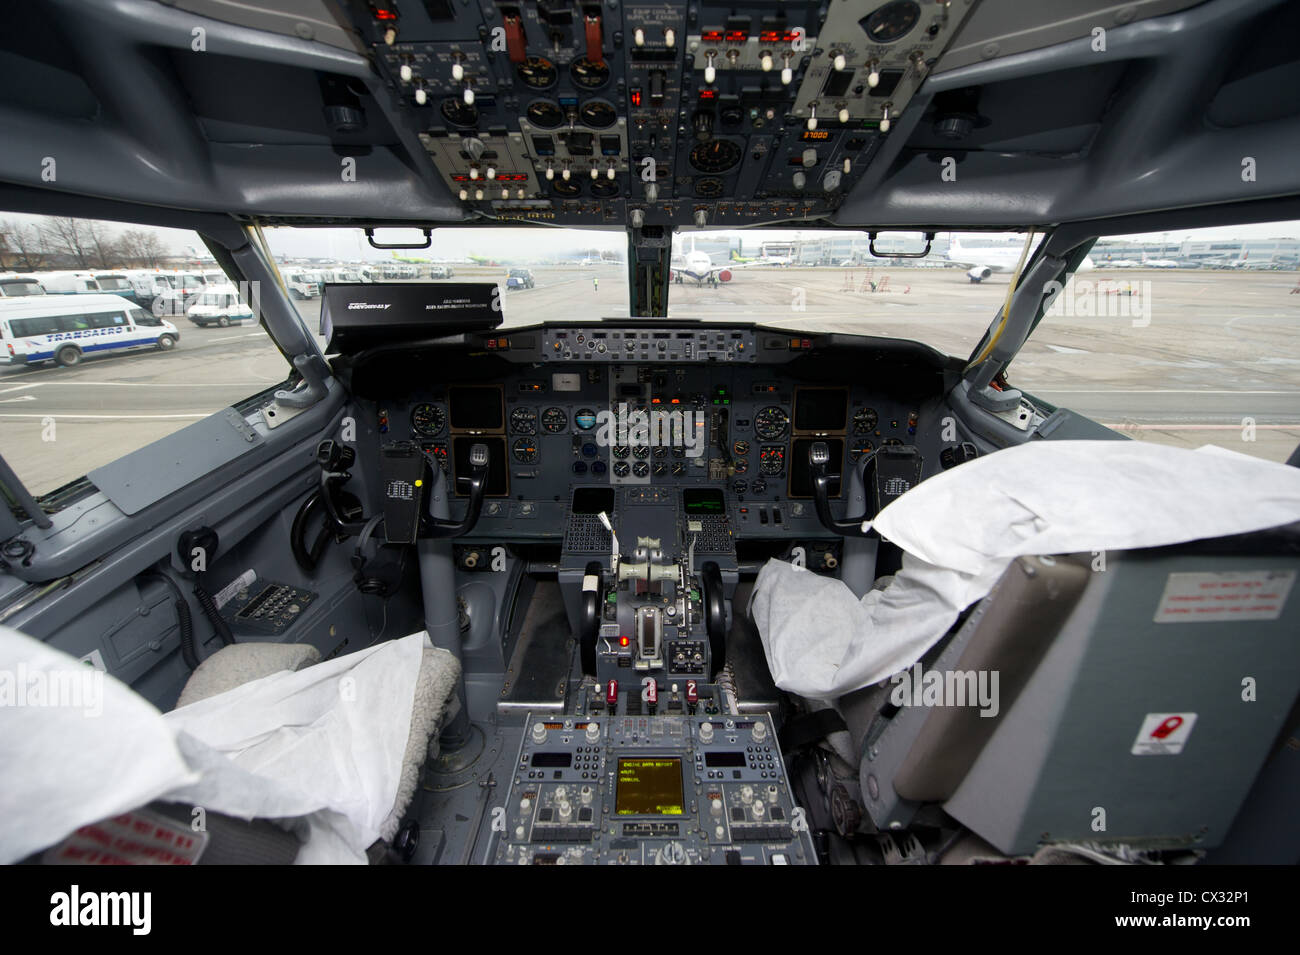 Itar Tass Moscow Russia December 2011 Cockpit In The Deluxe Stock Photo Alamy